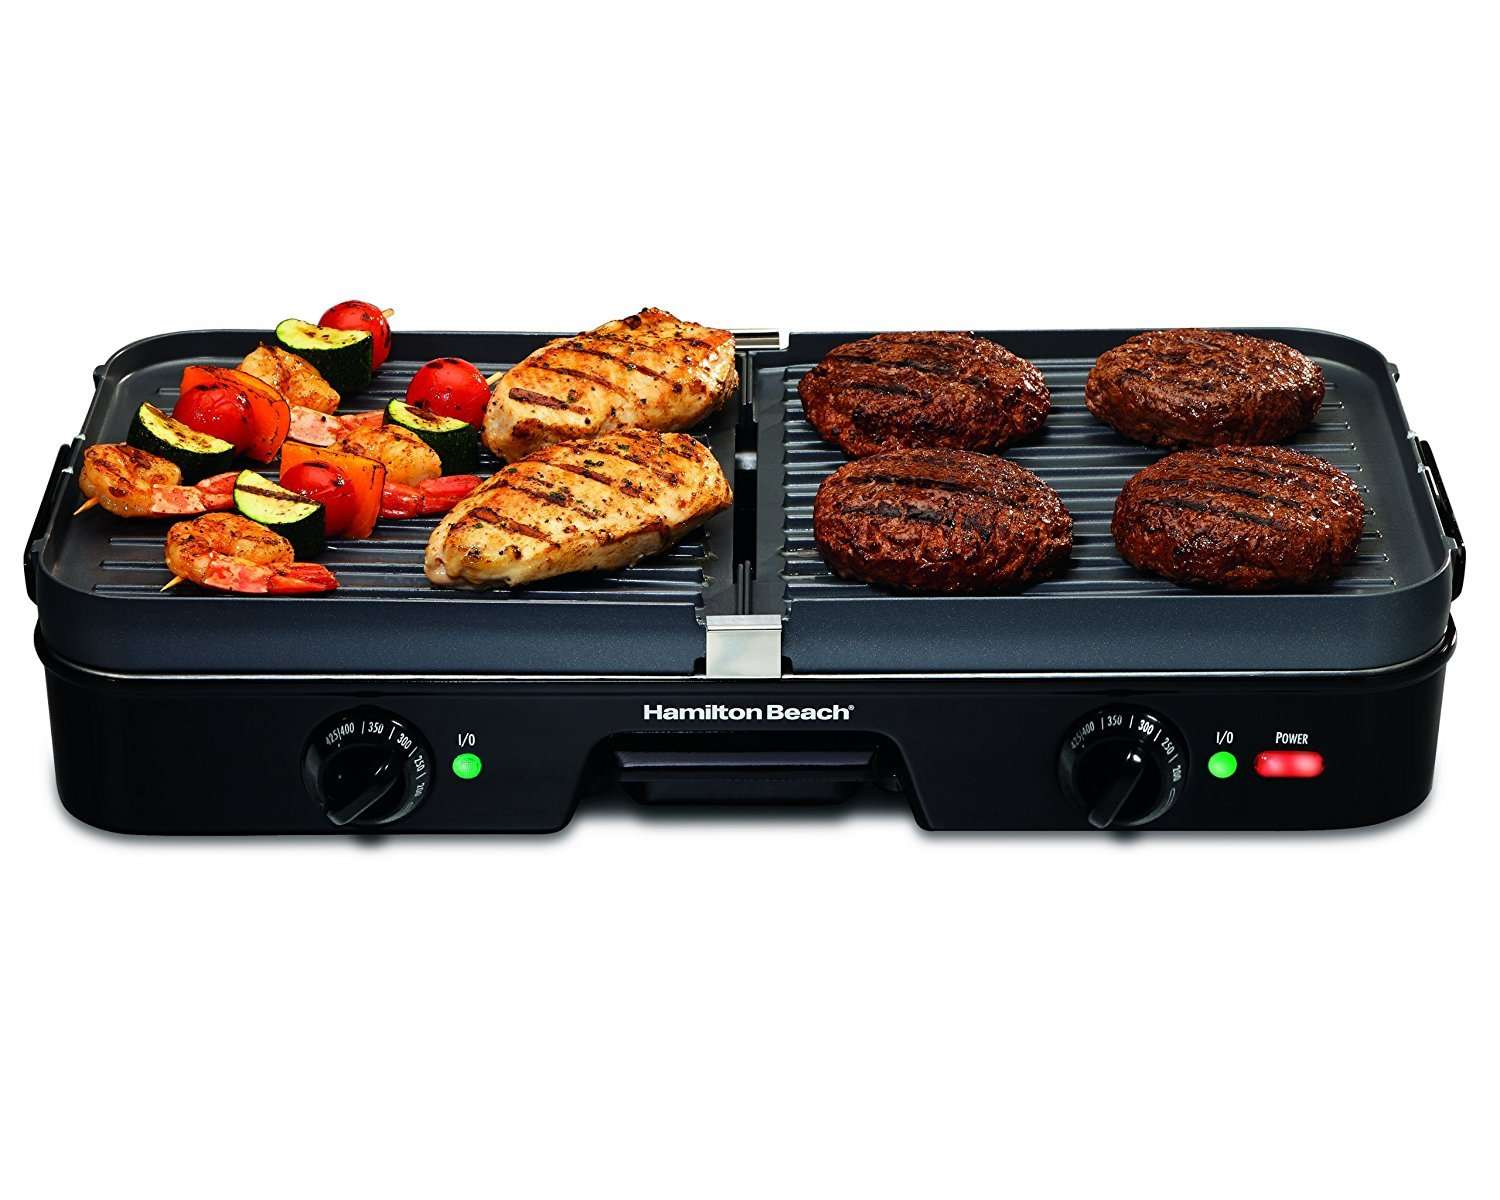 Hamilton beach 38546 3 i1 grill griddle review